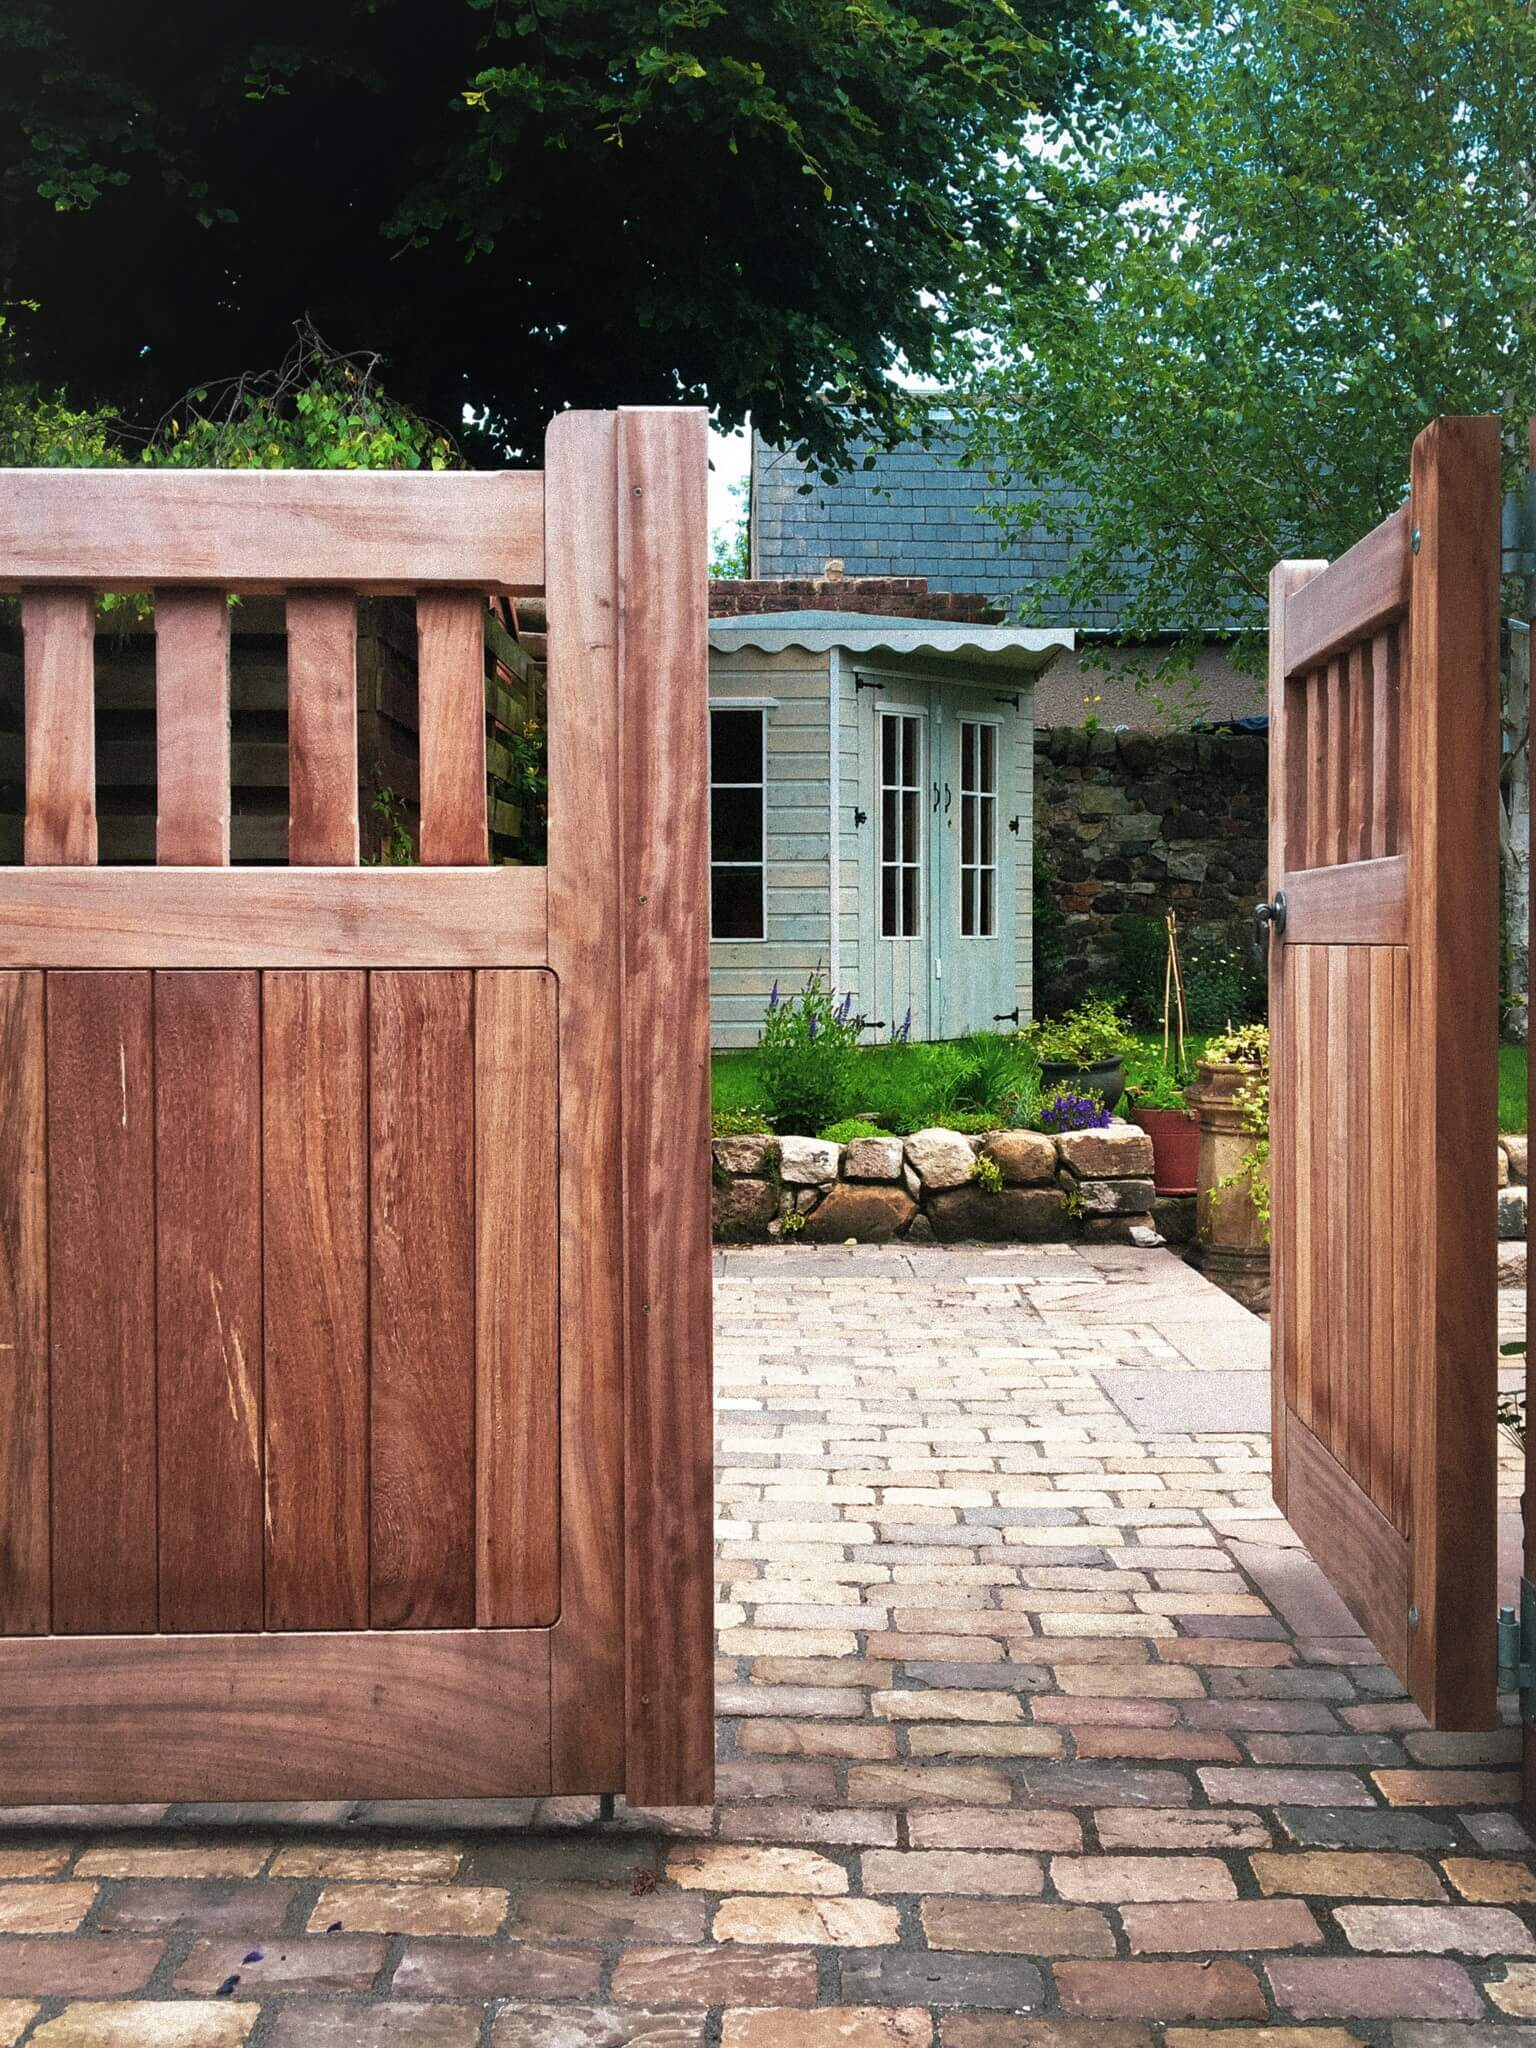 An open wooden gate looking out onto a stone driveway